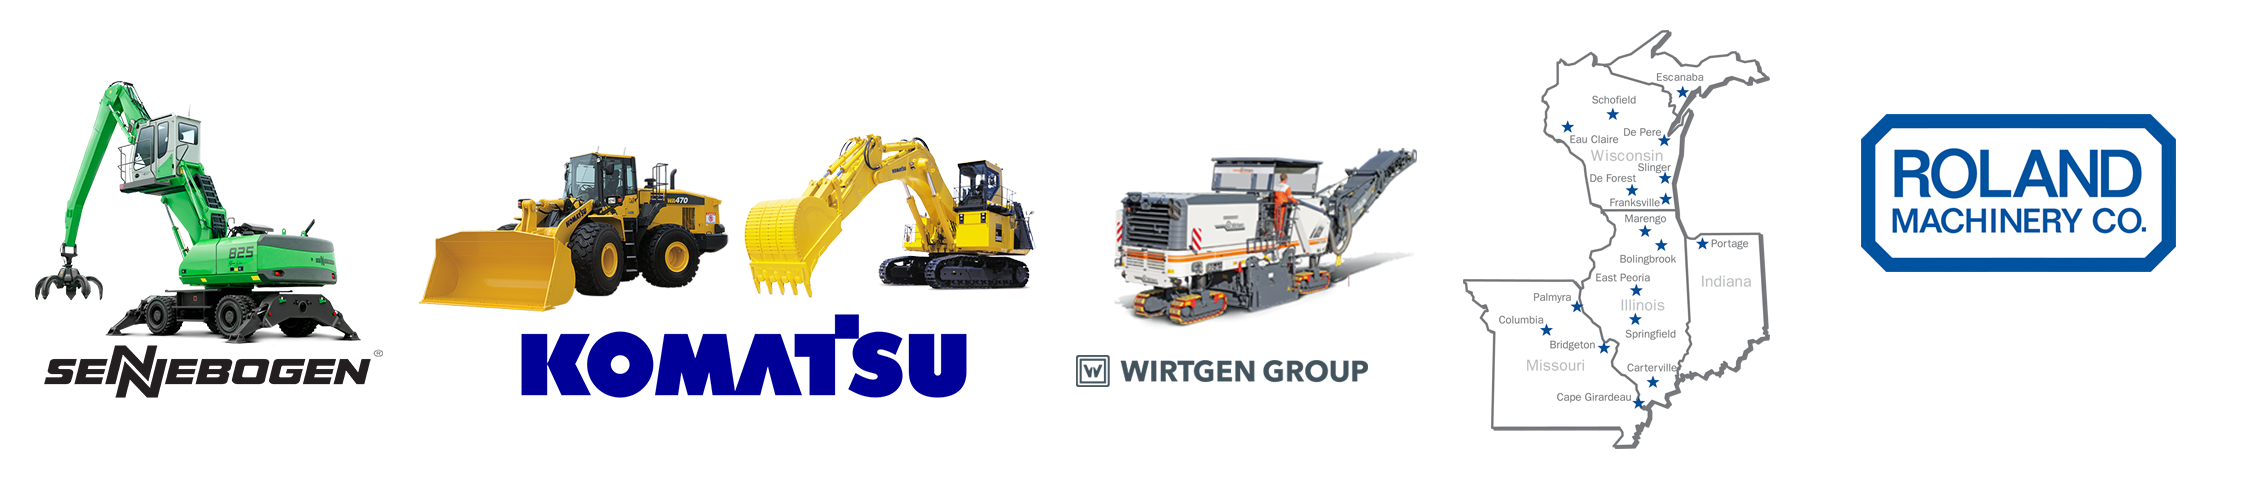 Used Construction Equipment For Sale By Roland Machinery Co  - 80